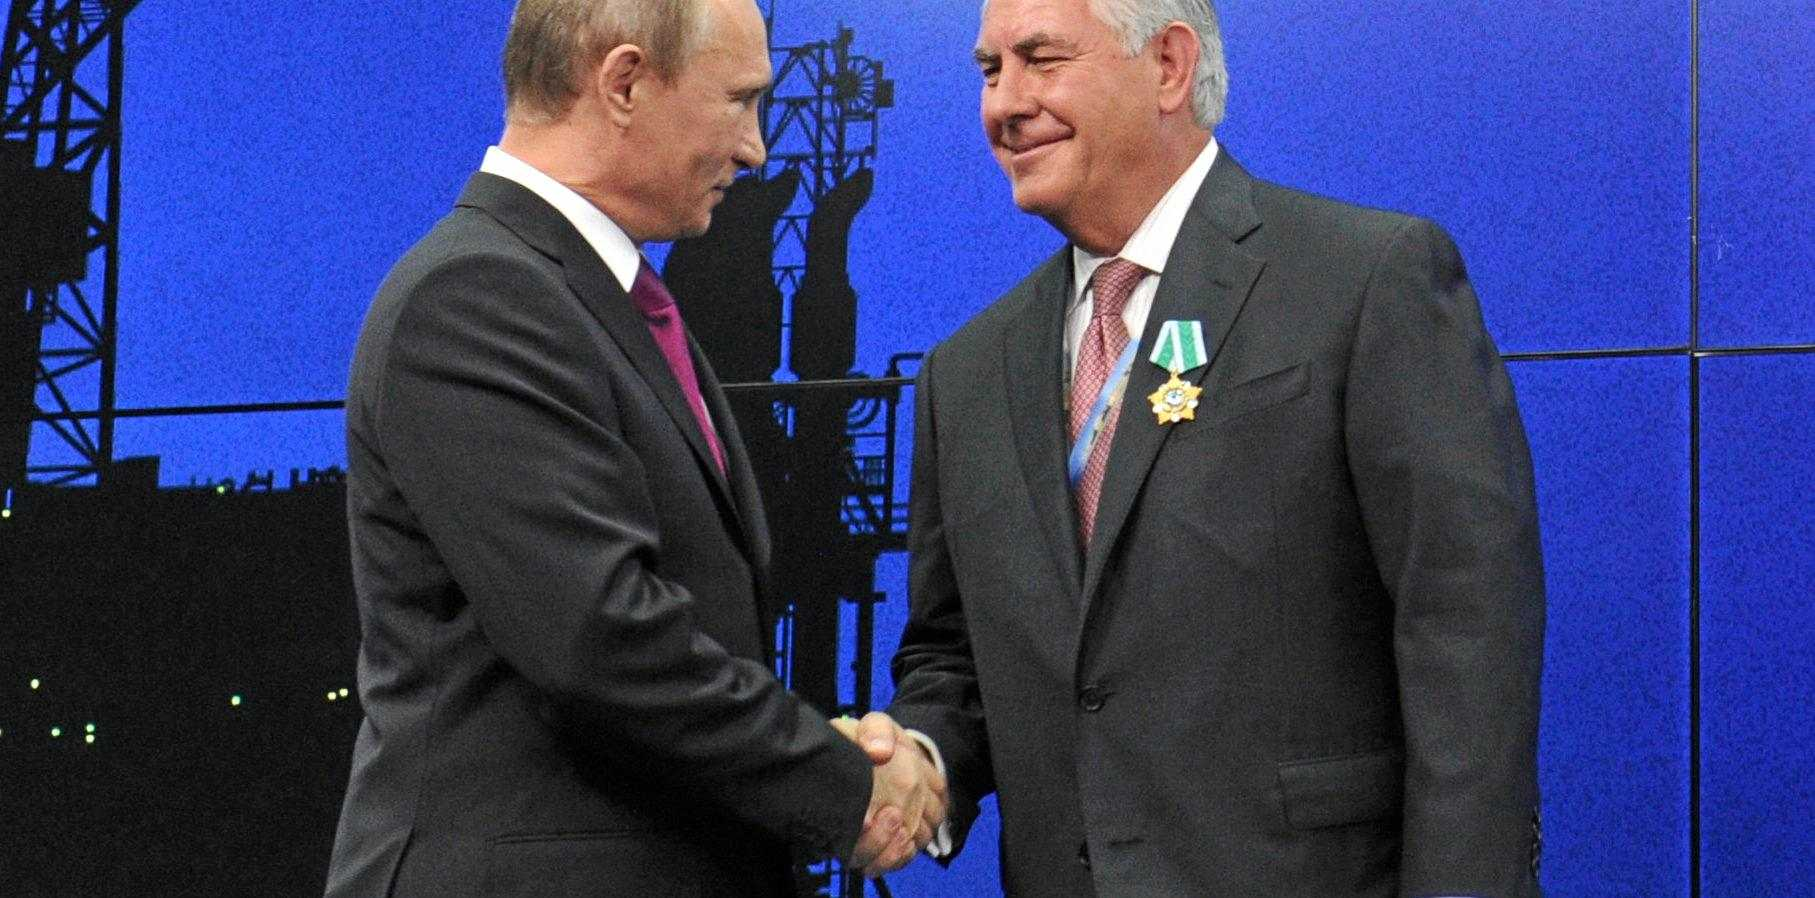 In this photo taken on June 21, 2012, Russian President Vladimir Putin presents ExxonMobil CEO Rex Tillerson with a Russian medal at an award ceremony in St Petersburg